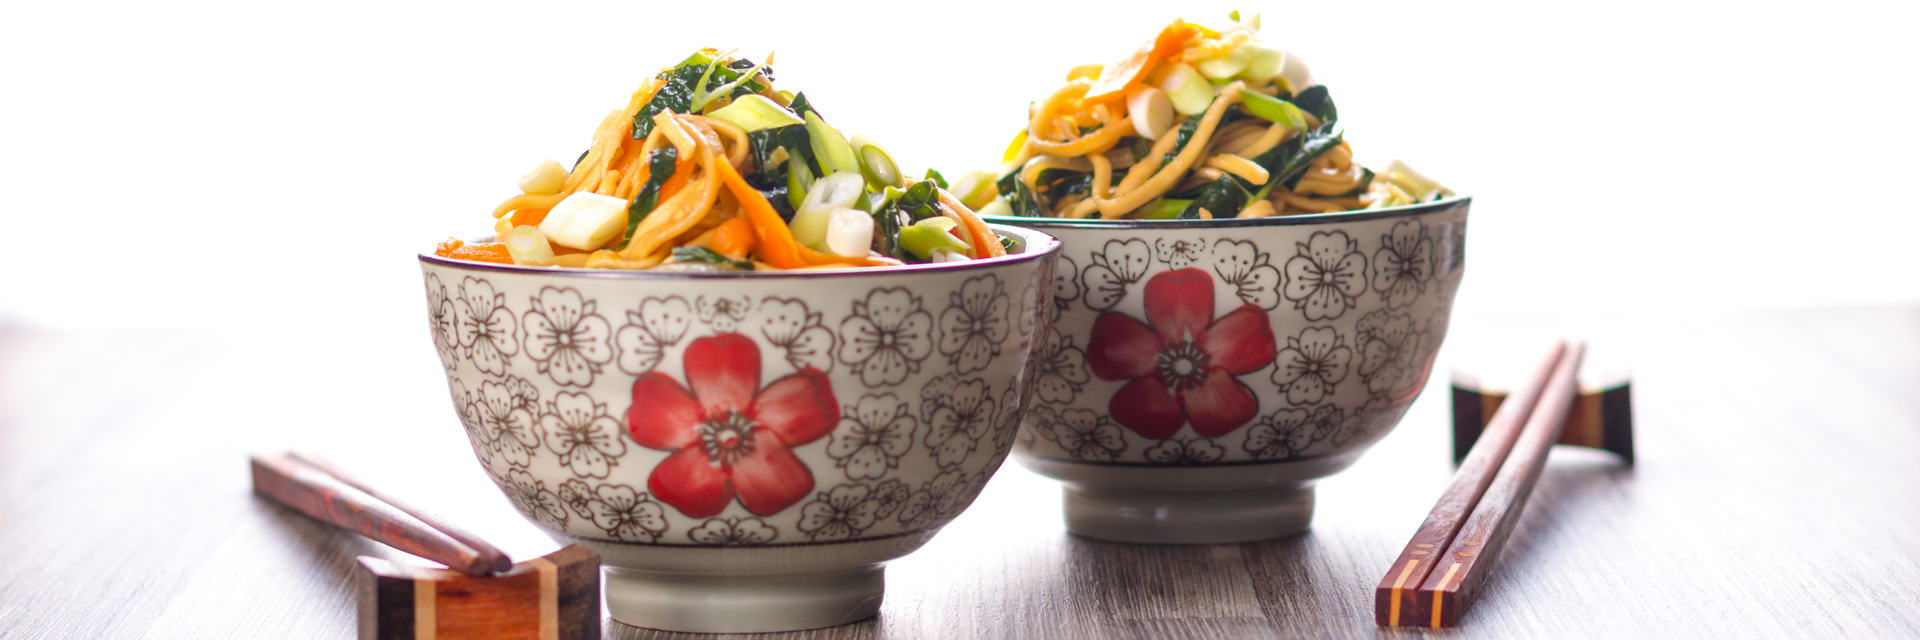 Stir-fried-Noodles-Banner